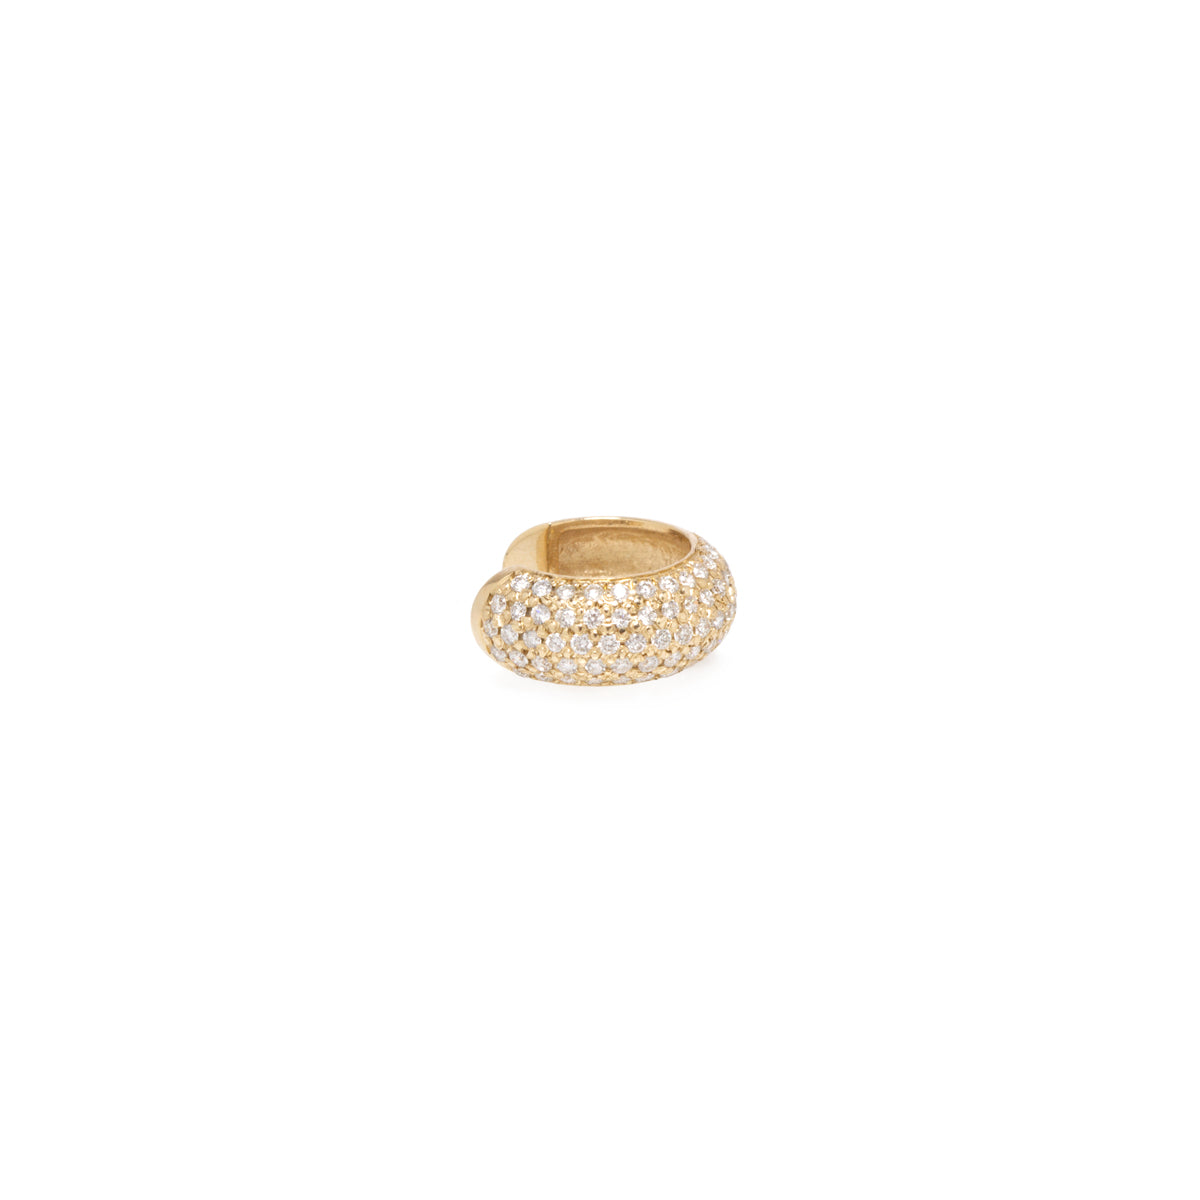 14k wide round chubby ear cuff covered with pave diamonds